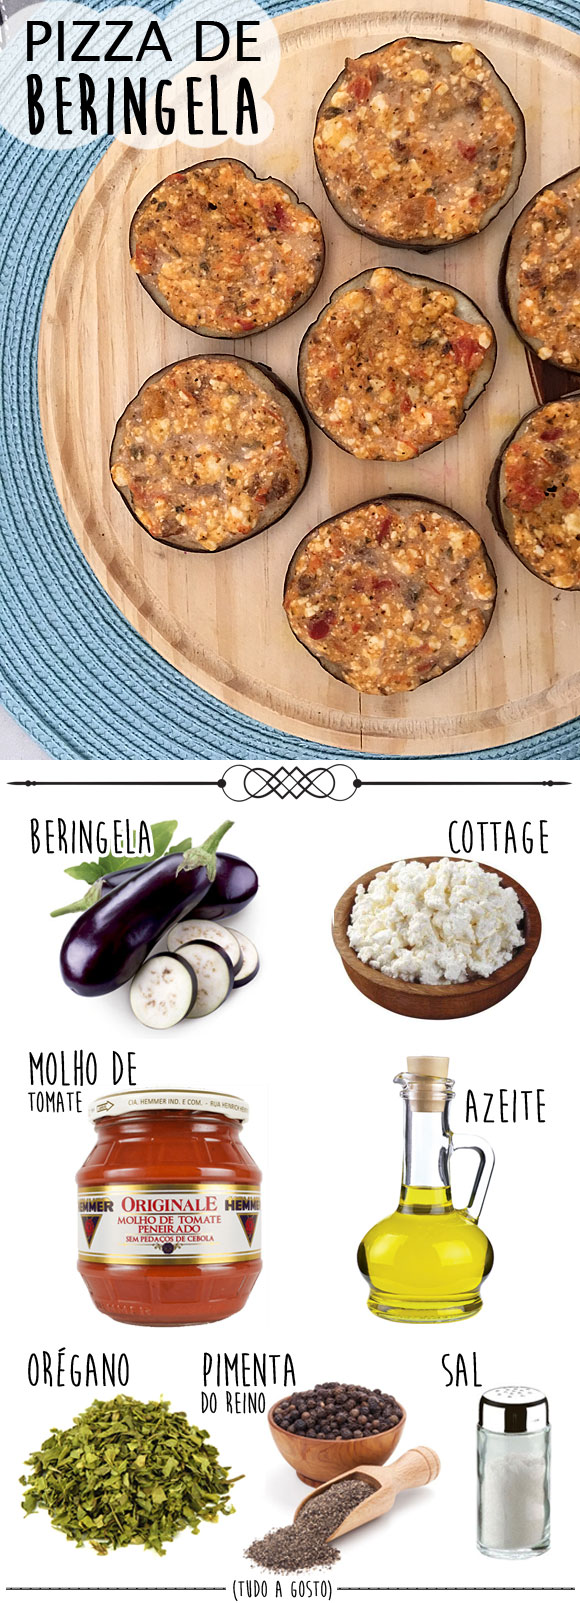 berinjela-pizza-receita-light-delicia-3